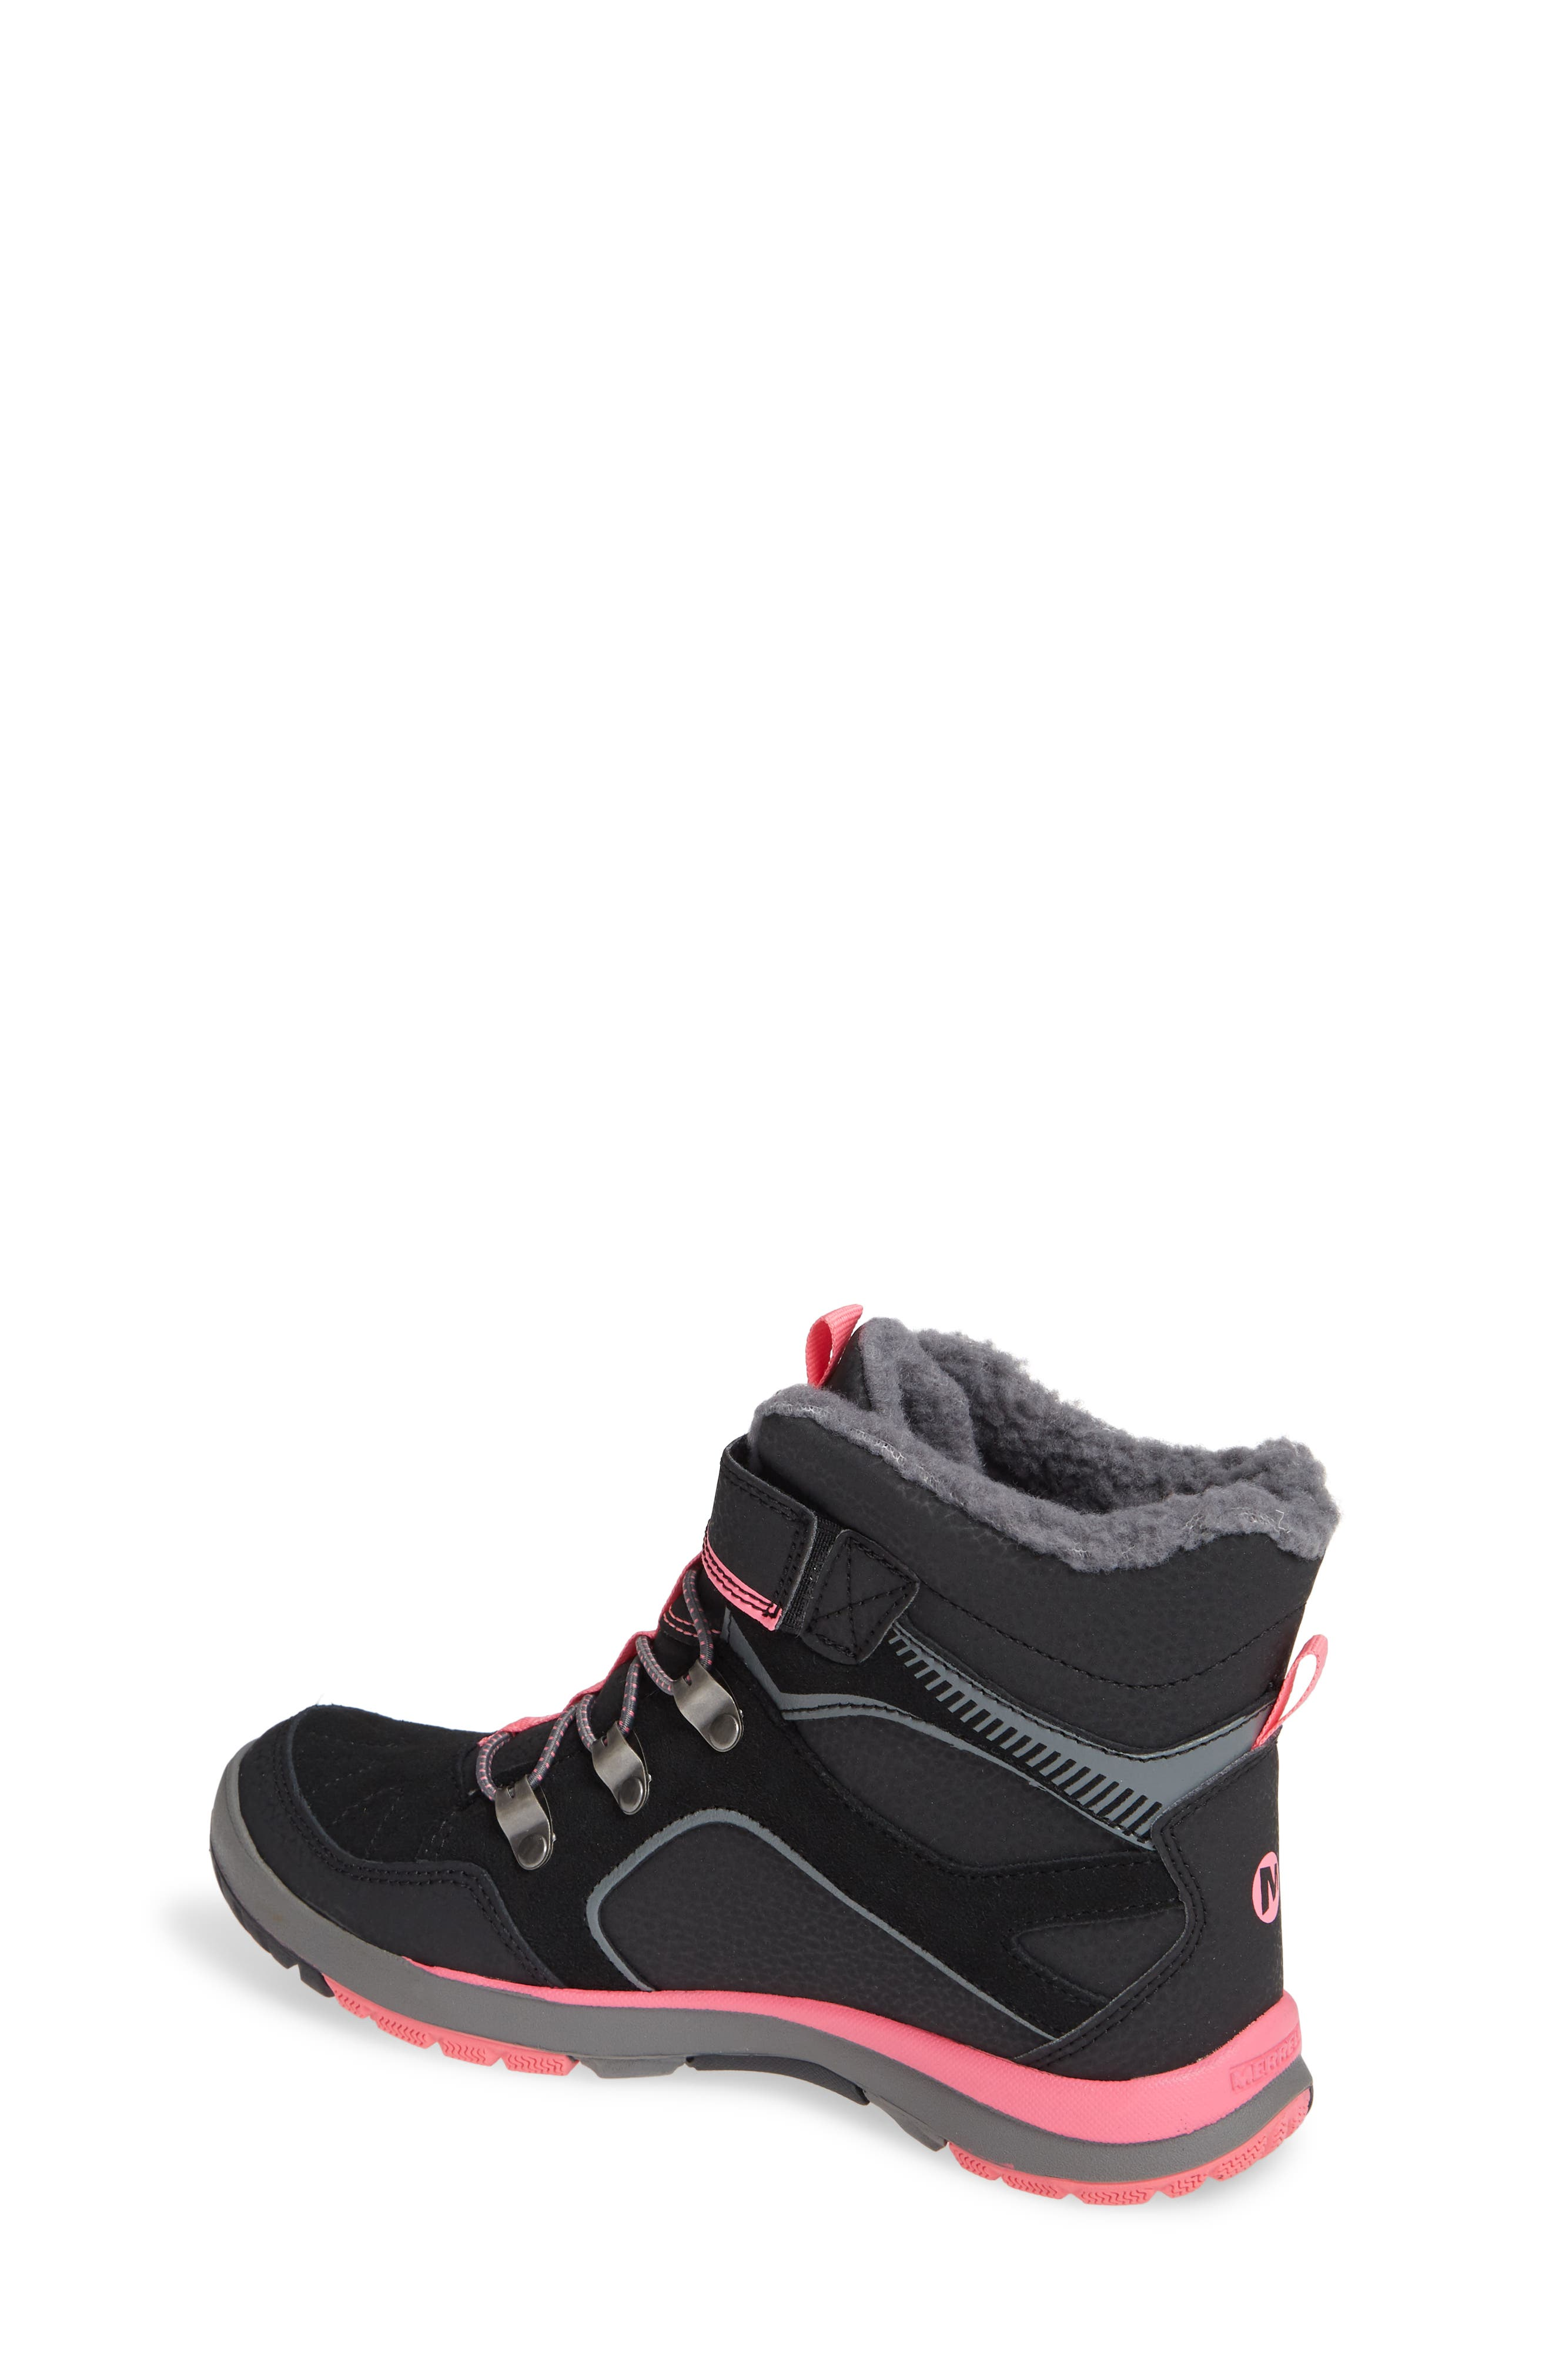 Moab FST Polar Mid Waterproof Insulated Sneaker Boot,                             Alternate thumbnail 2, color,                             BLACK/ PINK